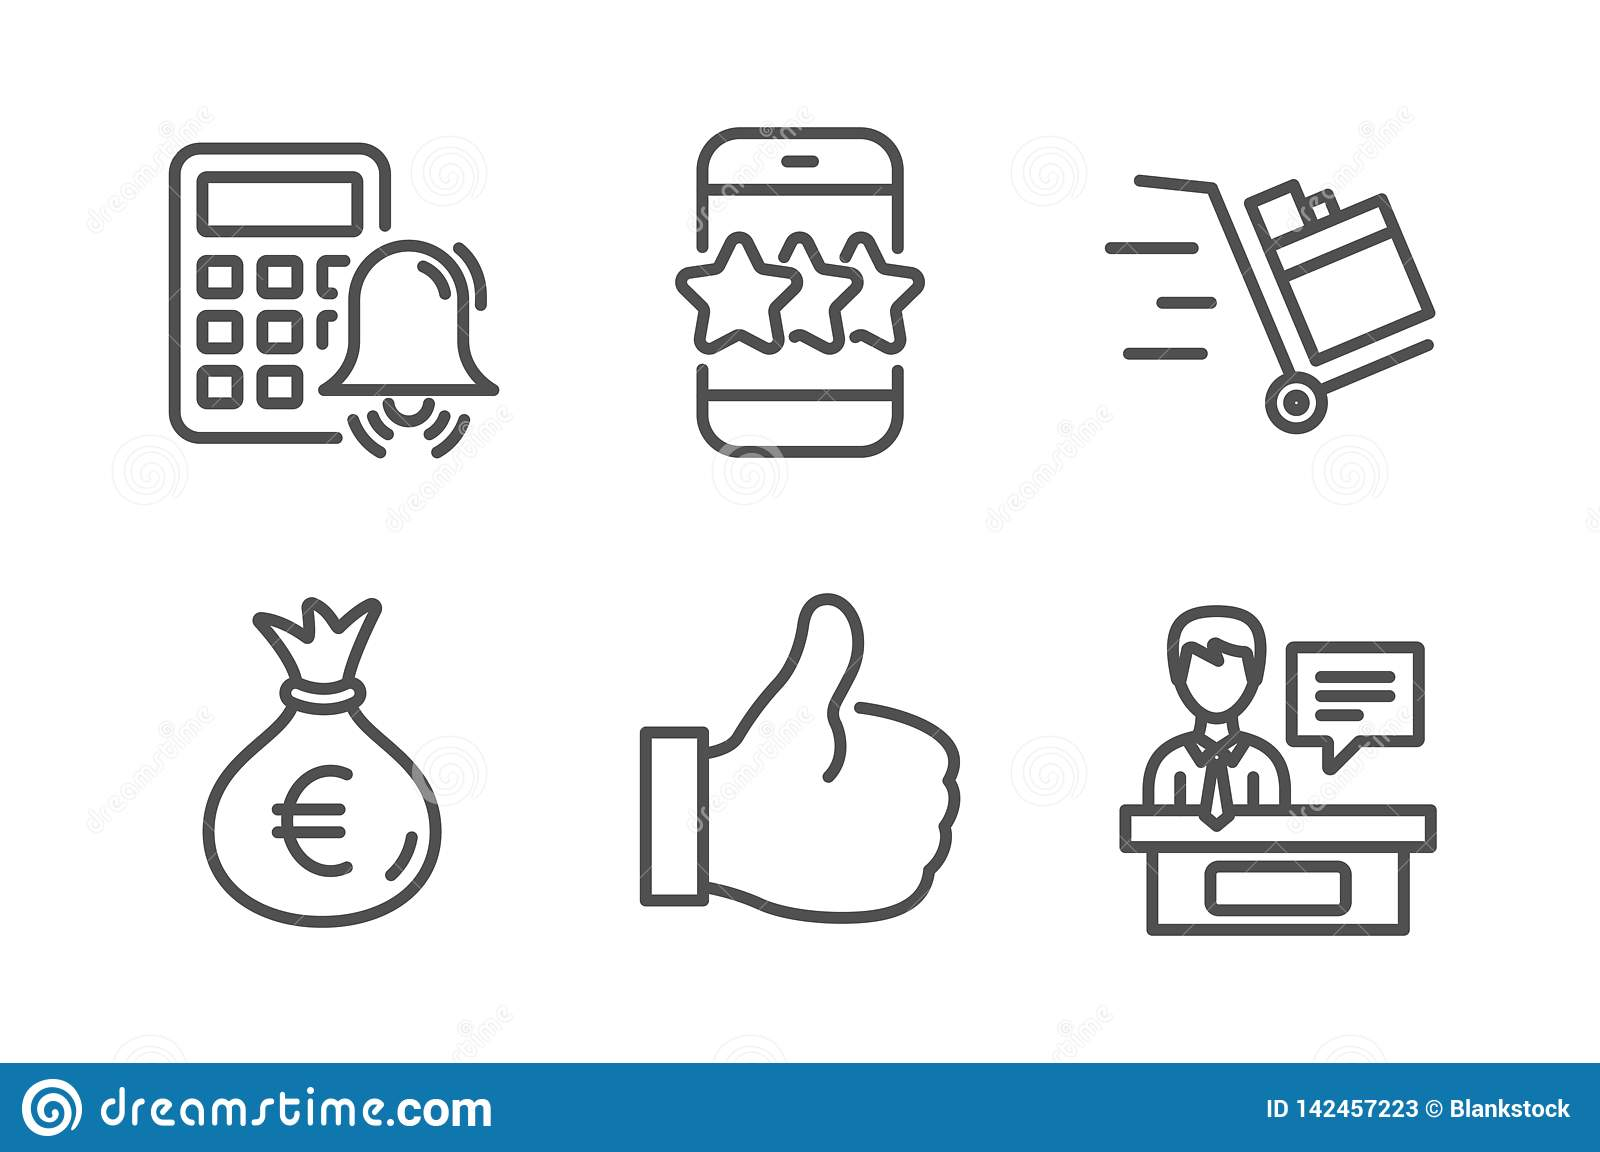 star, like and calculator alarm icons simple set  push cart, money bag and  exhibitors signs  phone feedback, thumbs up  business set  line star icon